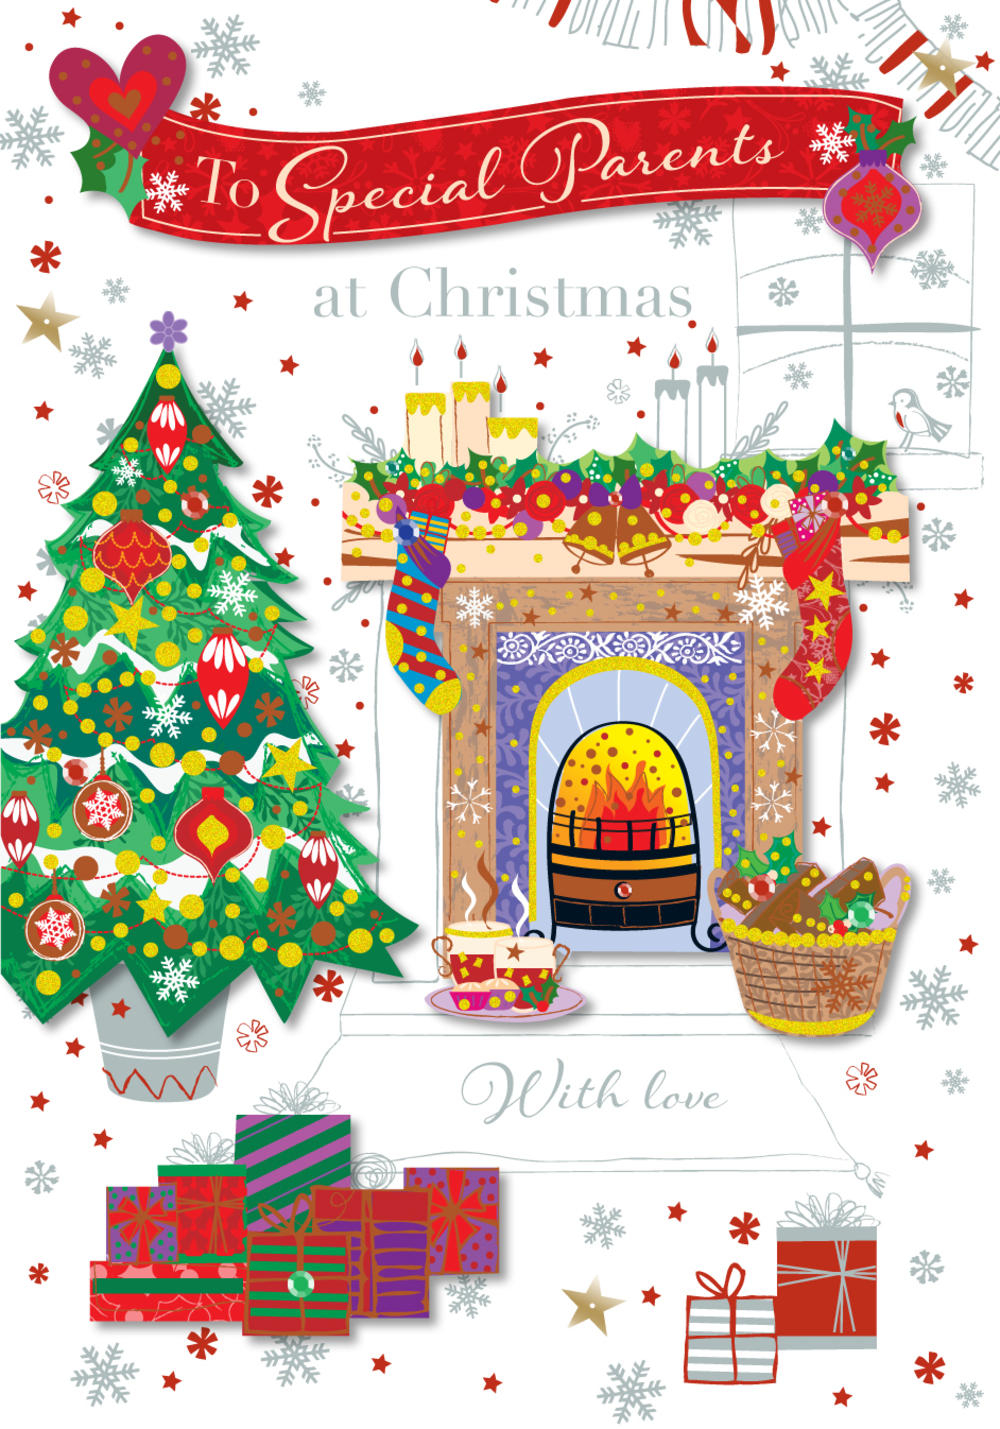 To Special Parents Christmas Greeting Card | Cards